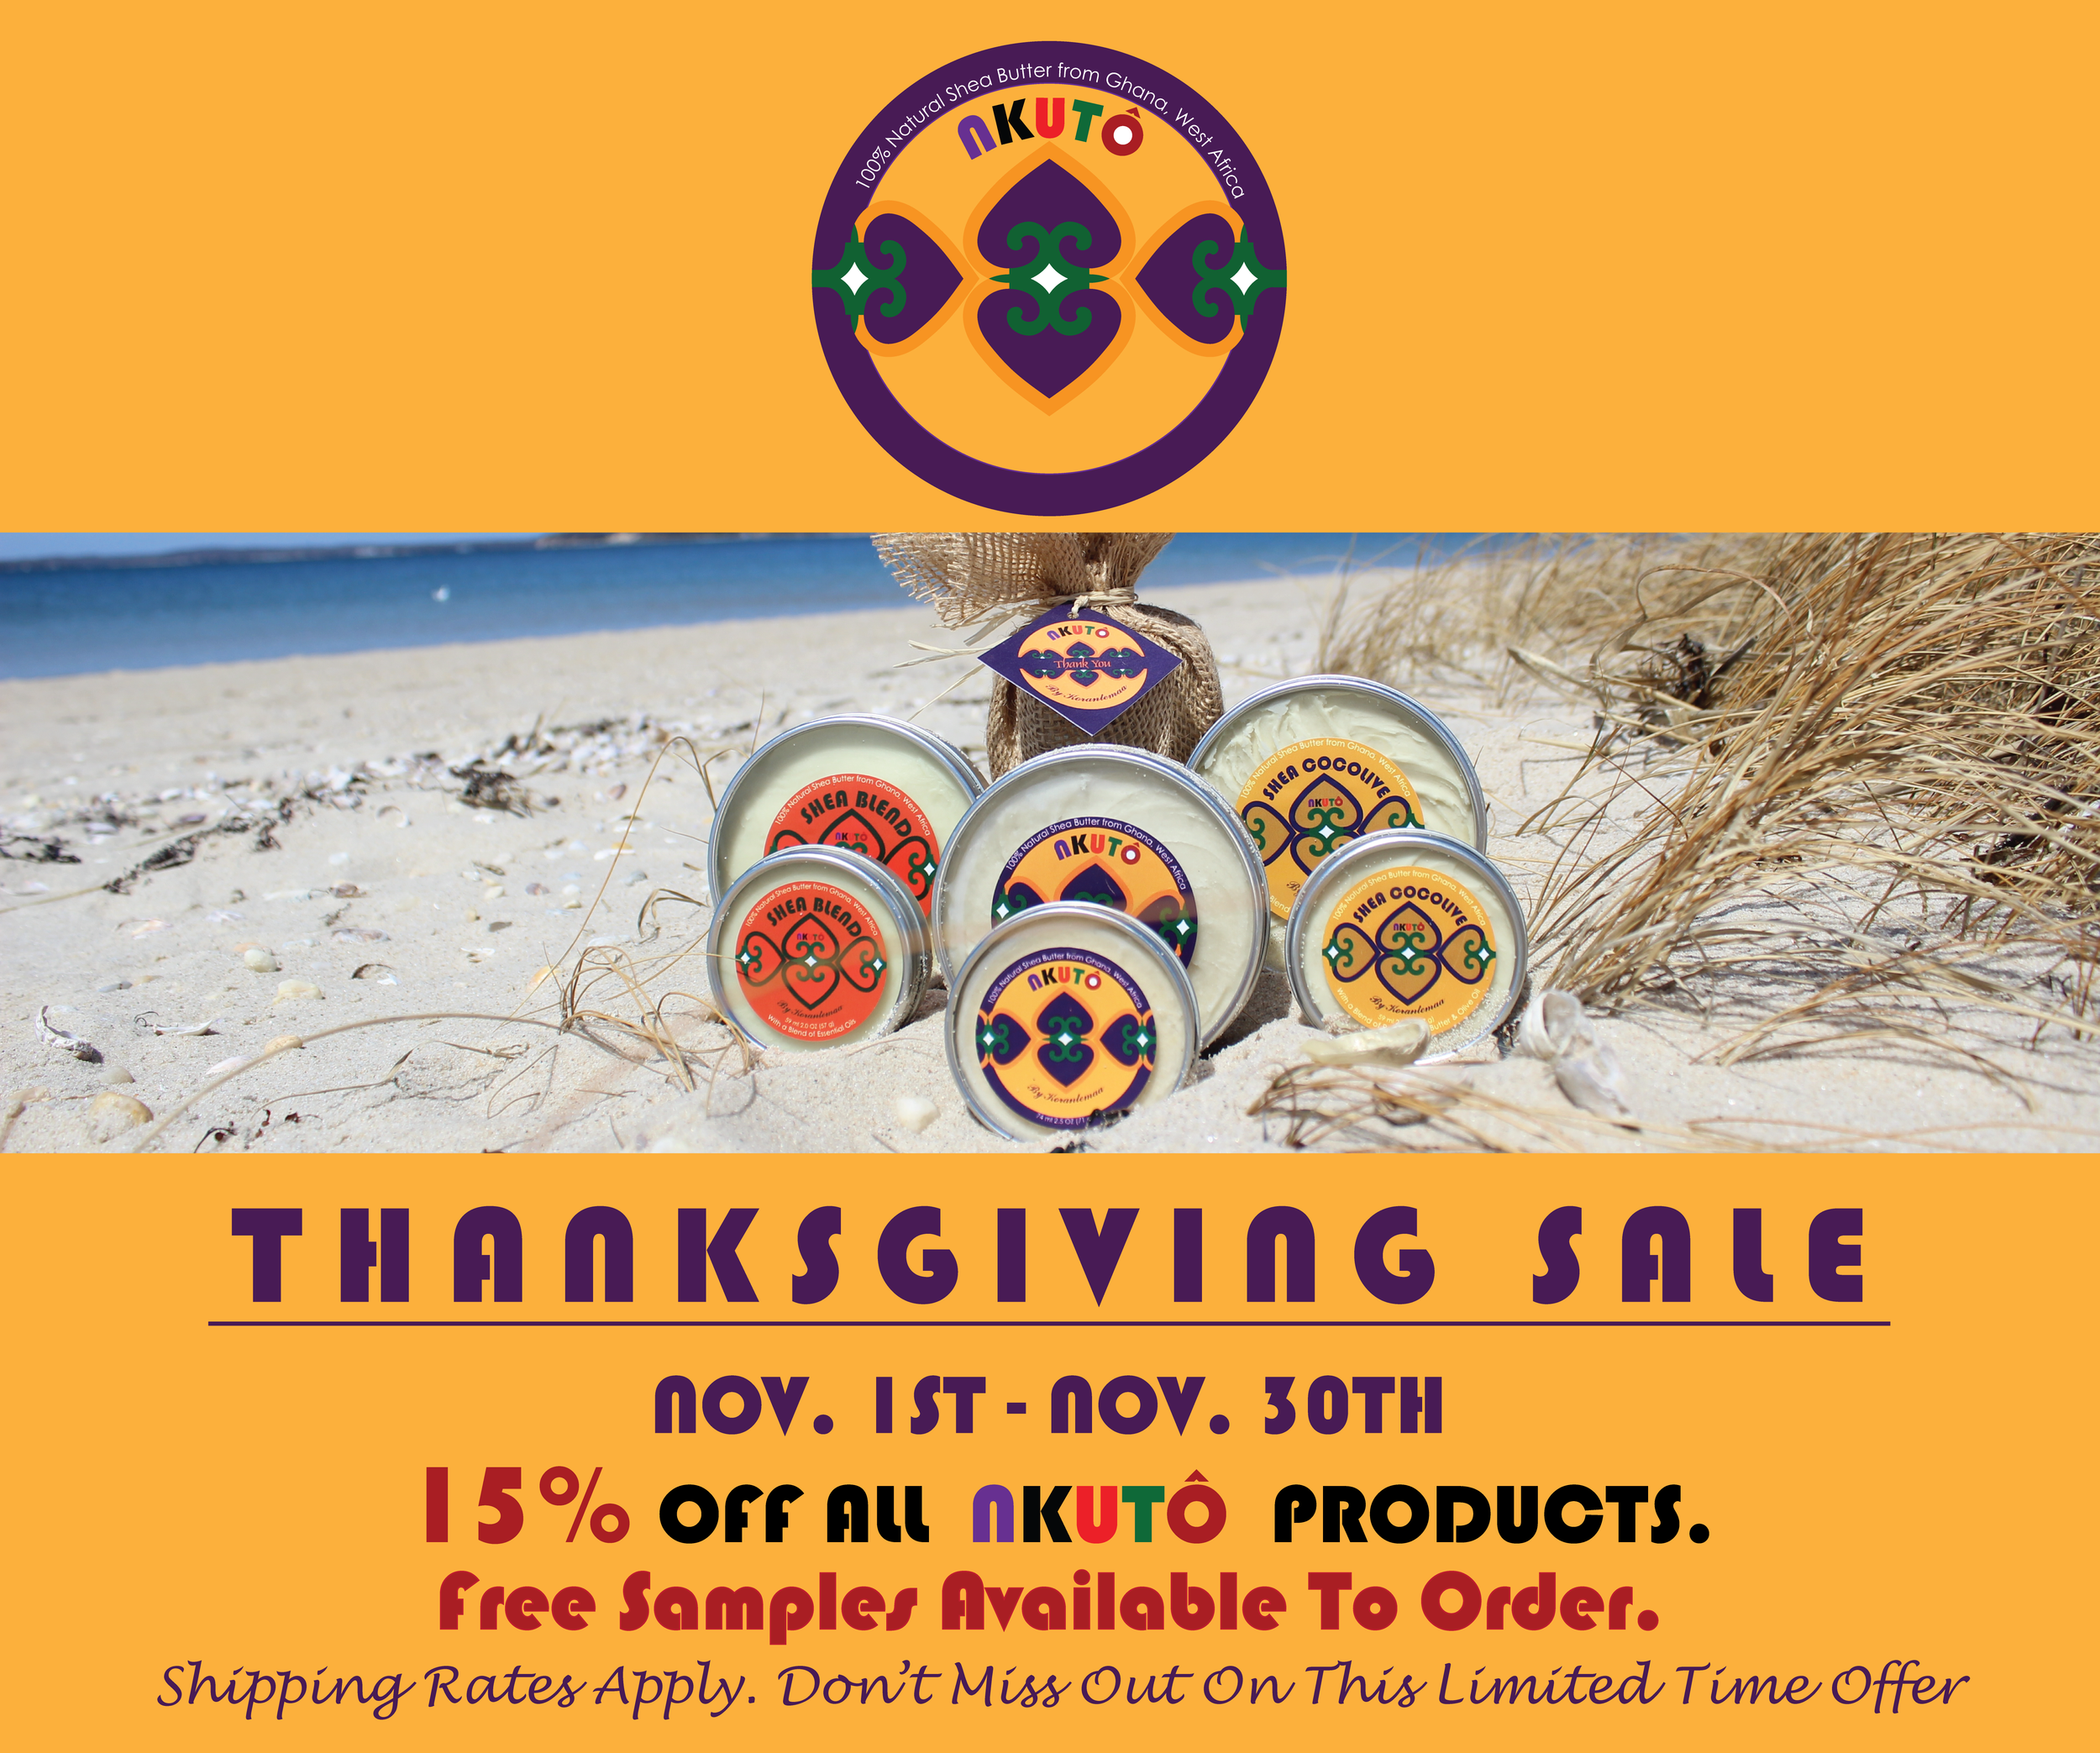 Nkuto Thanksgiving Sale Poster 2.png